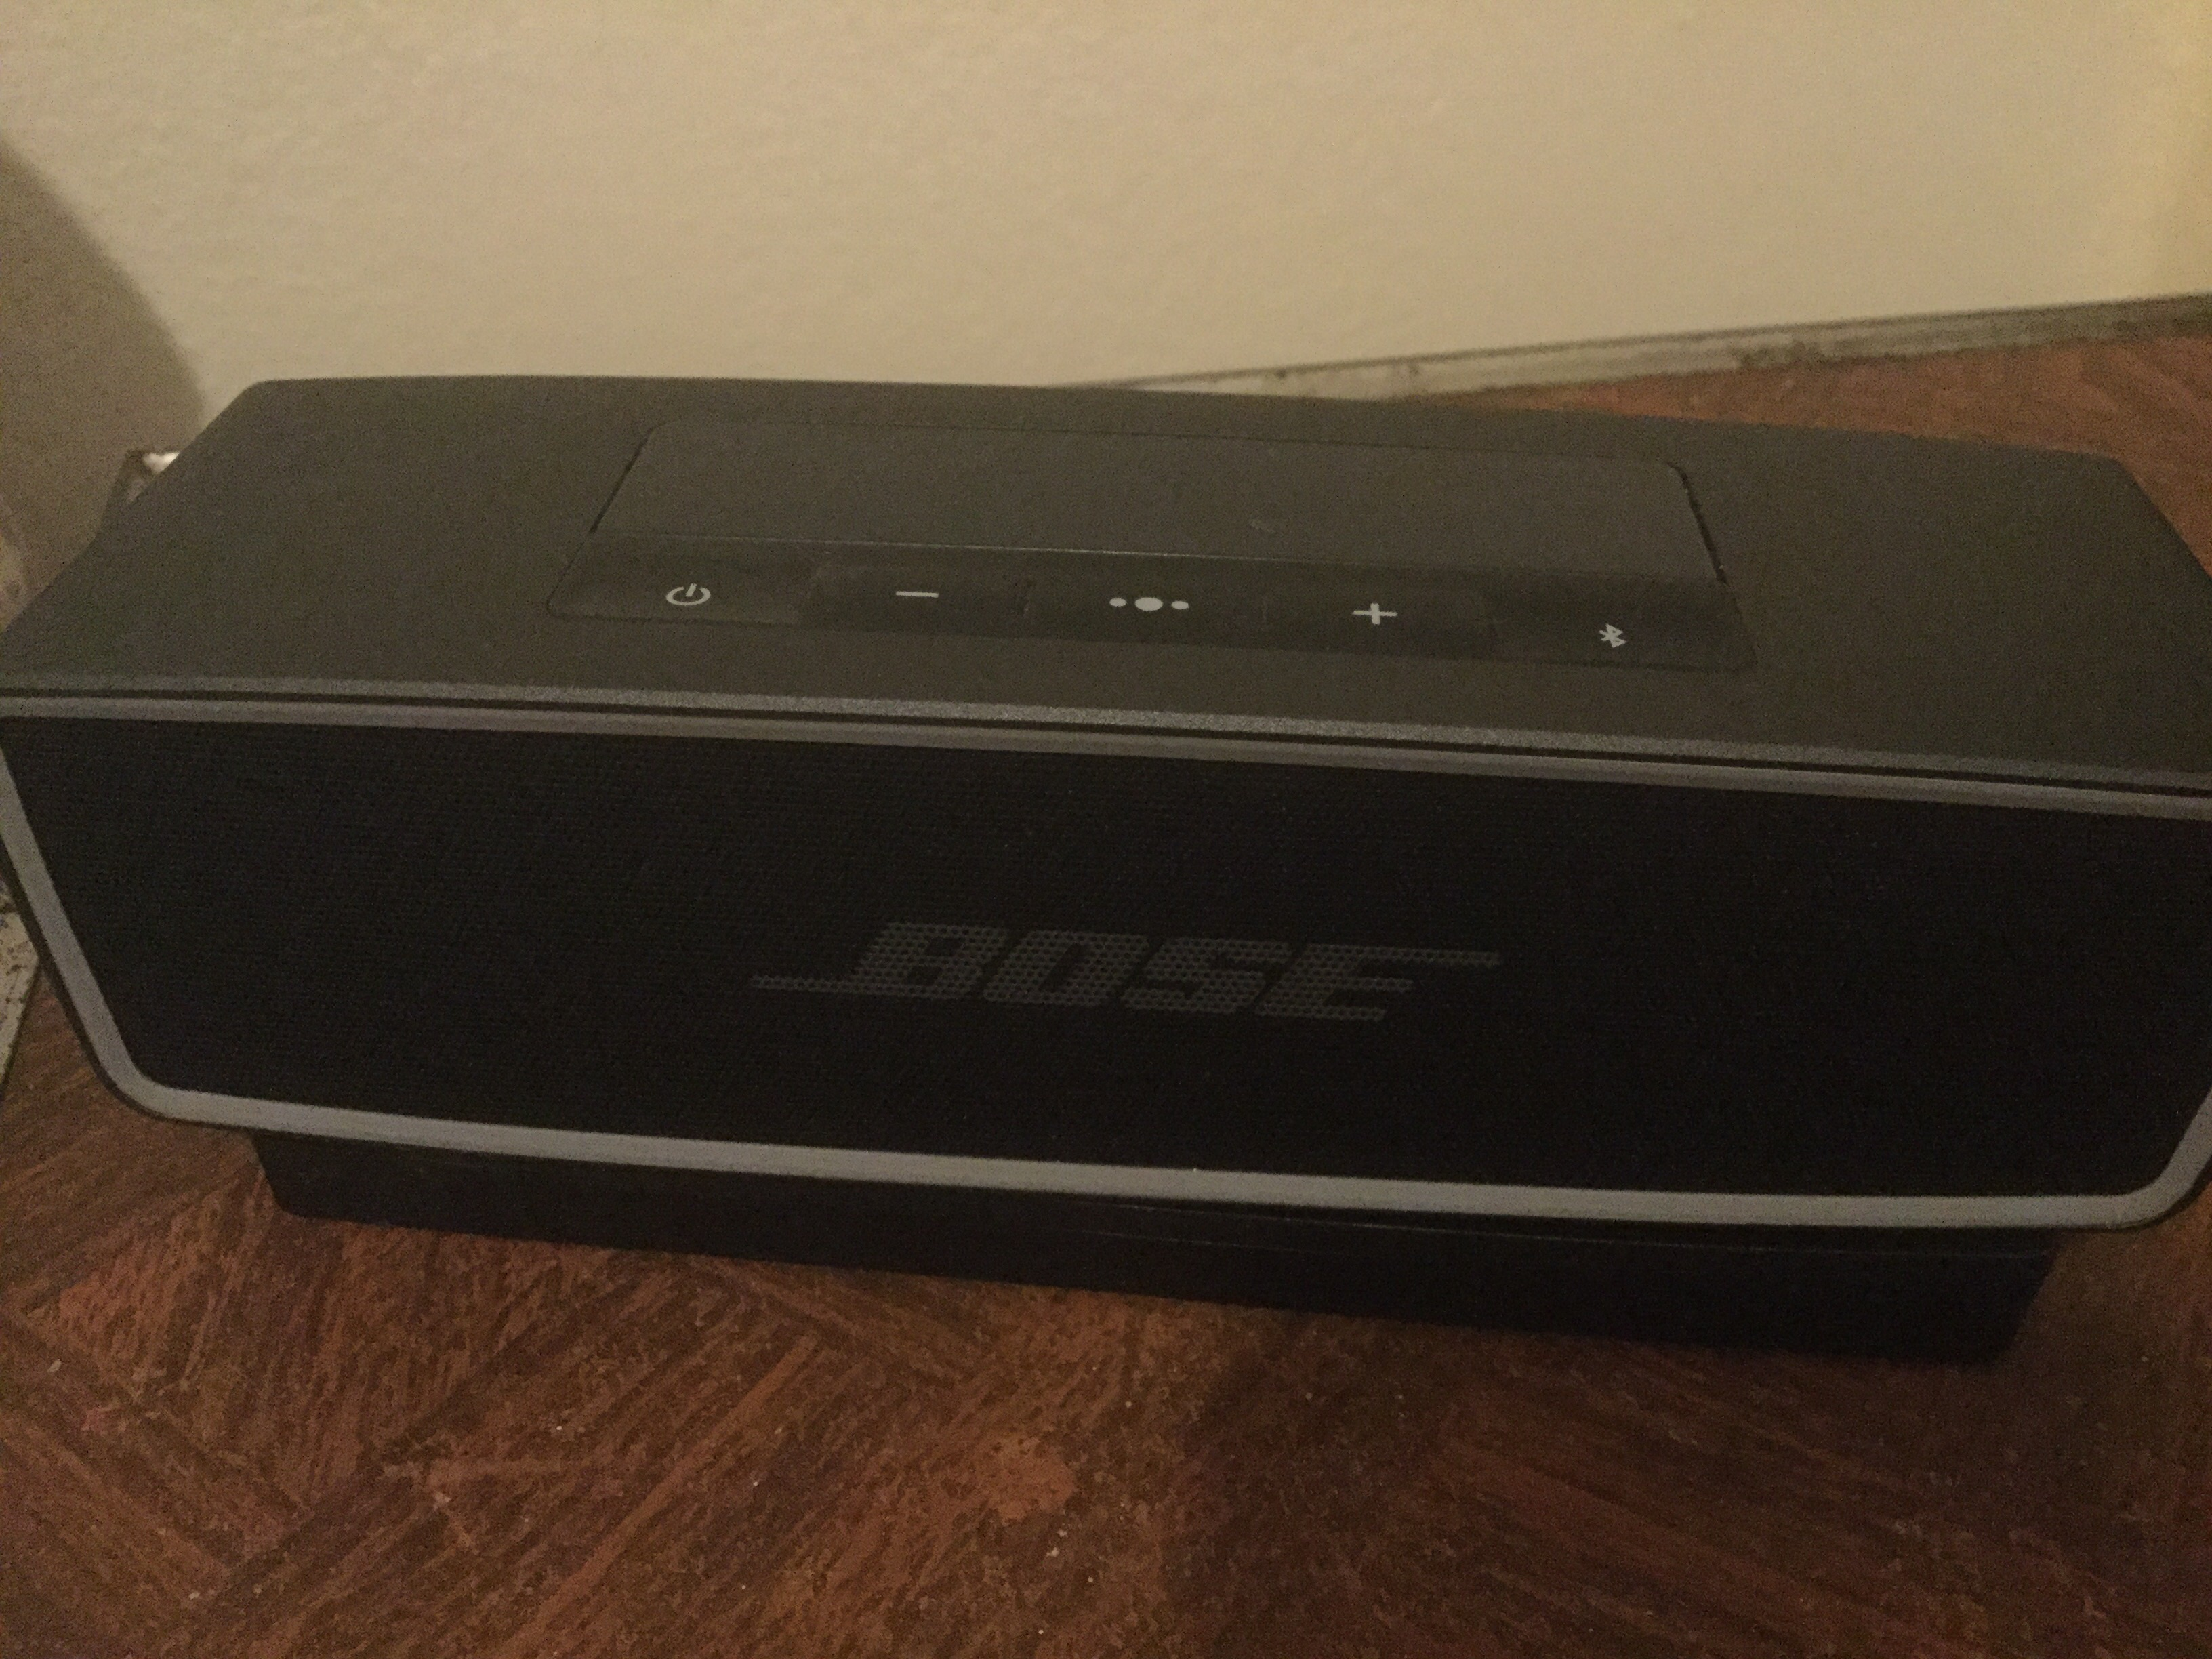 bose soundlink mini will not pair with iphone